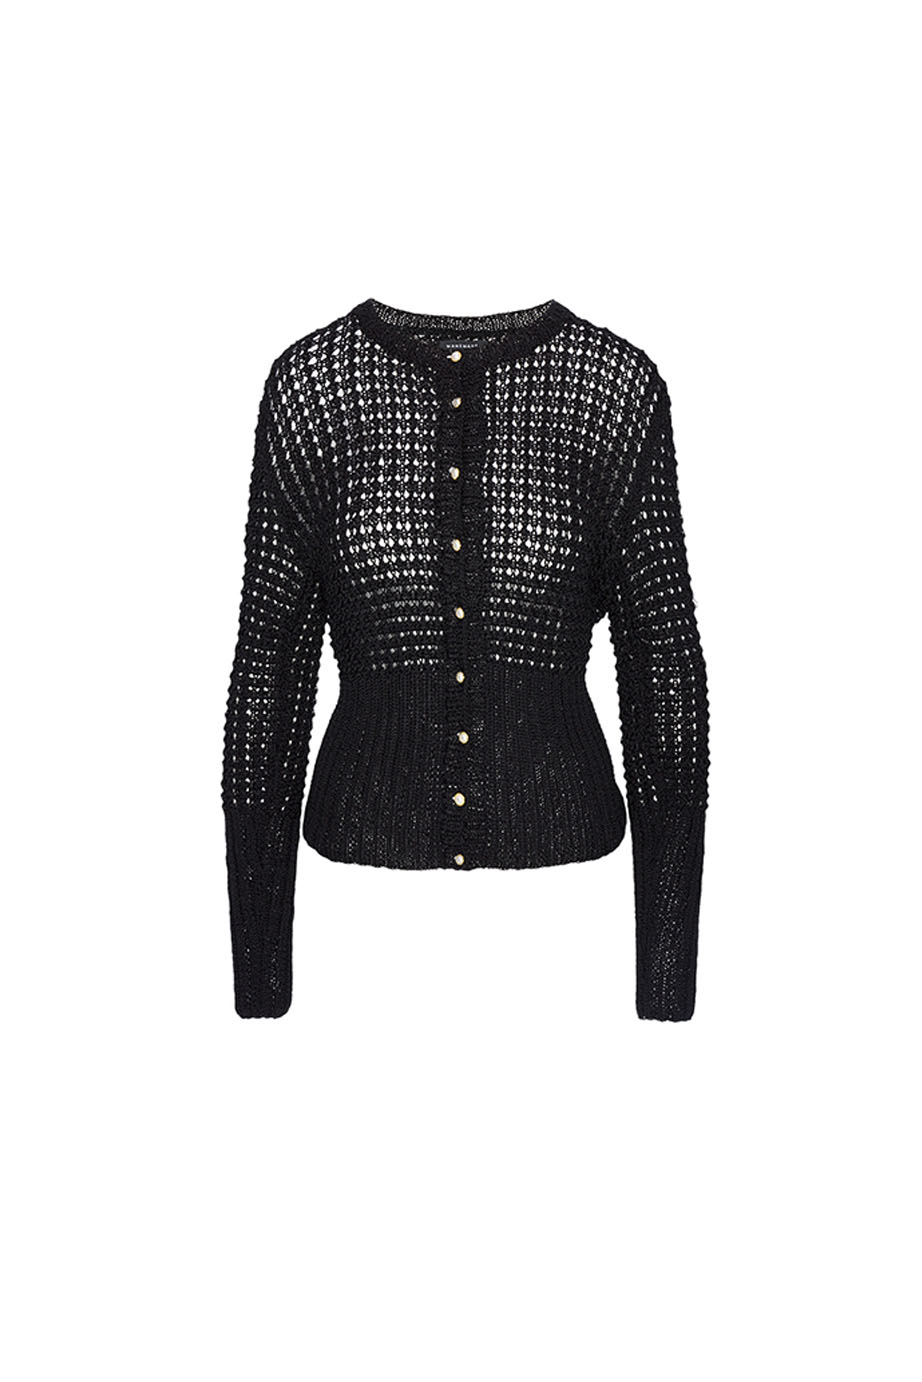 01. MANEMANE BLACK KNITTED JACKET